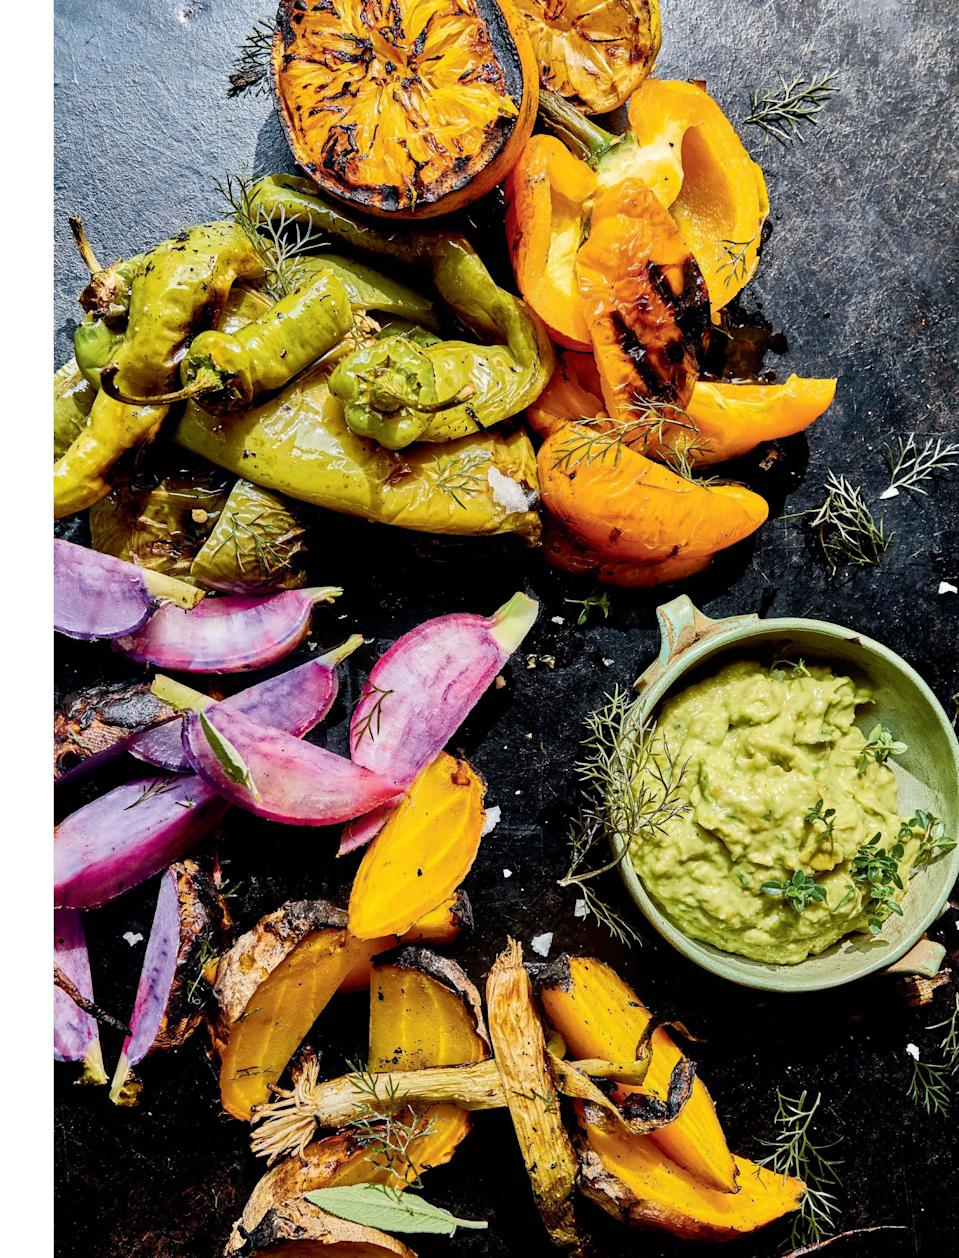 """Everyone loves an easy <a href=""""https://www.epicurious.com/recipes-menus/best-dip-recipes-gallery?mbid=synd_yahoo_rss"""" rel=""""nofollow noopener"""" target=""""_blank"""" data-ylk=""""slk:dip"""" class=""""link rapid-noclick-resp"""">dip</a>, but everyone <em>really</em> loves a dip that starts on the grill for a bit of smoky flavor. <a href=""""https://www.epicurious.com/recipes/food/views/grilled-green-goddess-dip-eric-werner?mbid=synd_yahoo_rss"""" rel=""""nofollow noopener"""" target=""""_blank"""" data-ylk=""""slk:See recipe."""" class=""""link rapid-noclick-resp"""">See recipe.</a>"""